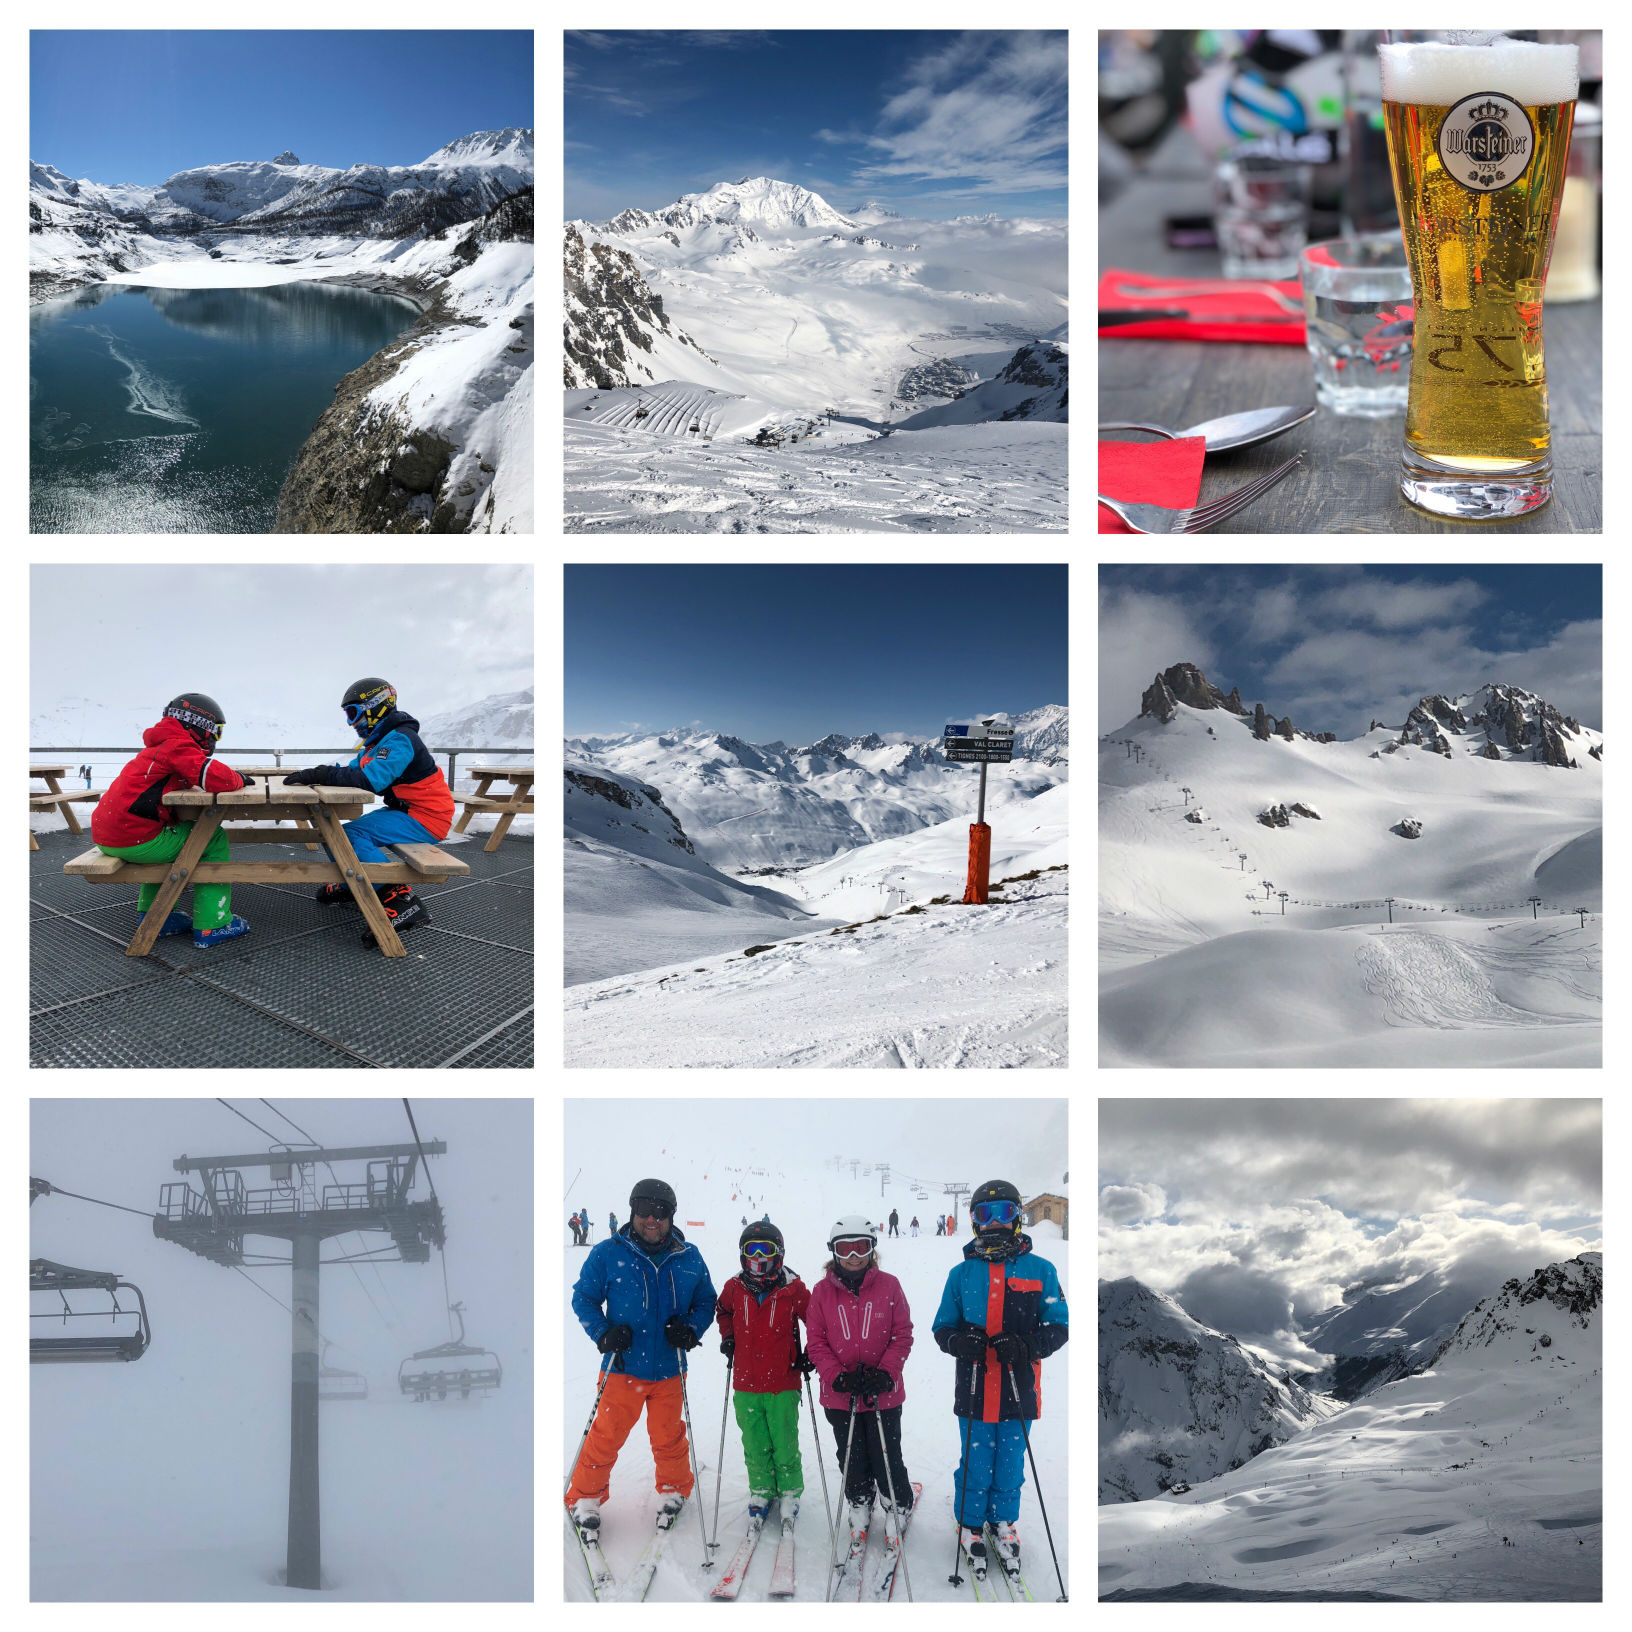 Skiing in Tignes-Val d'Isère (Espace Killy)